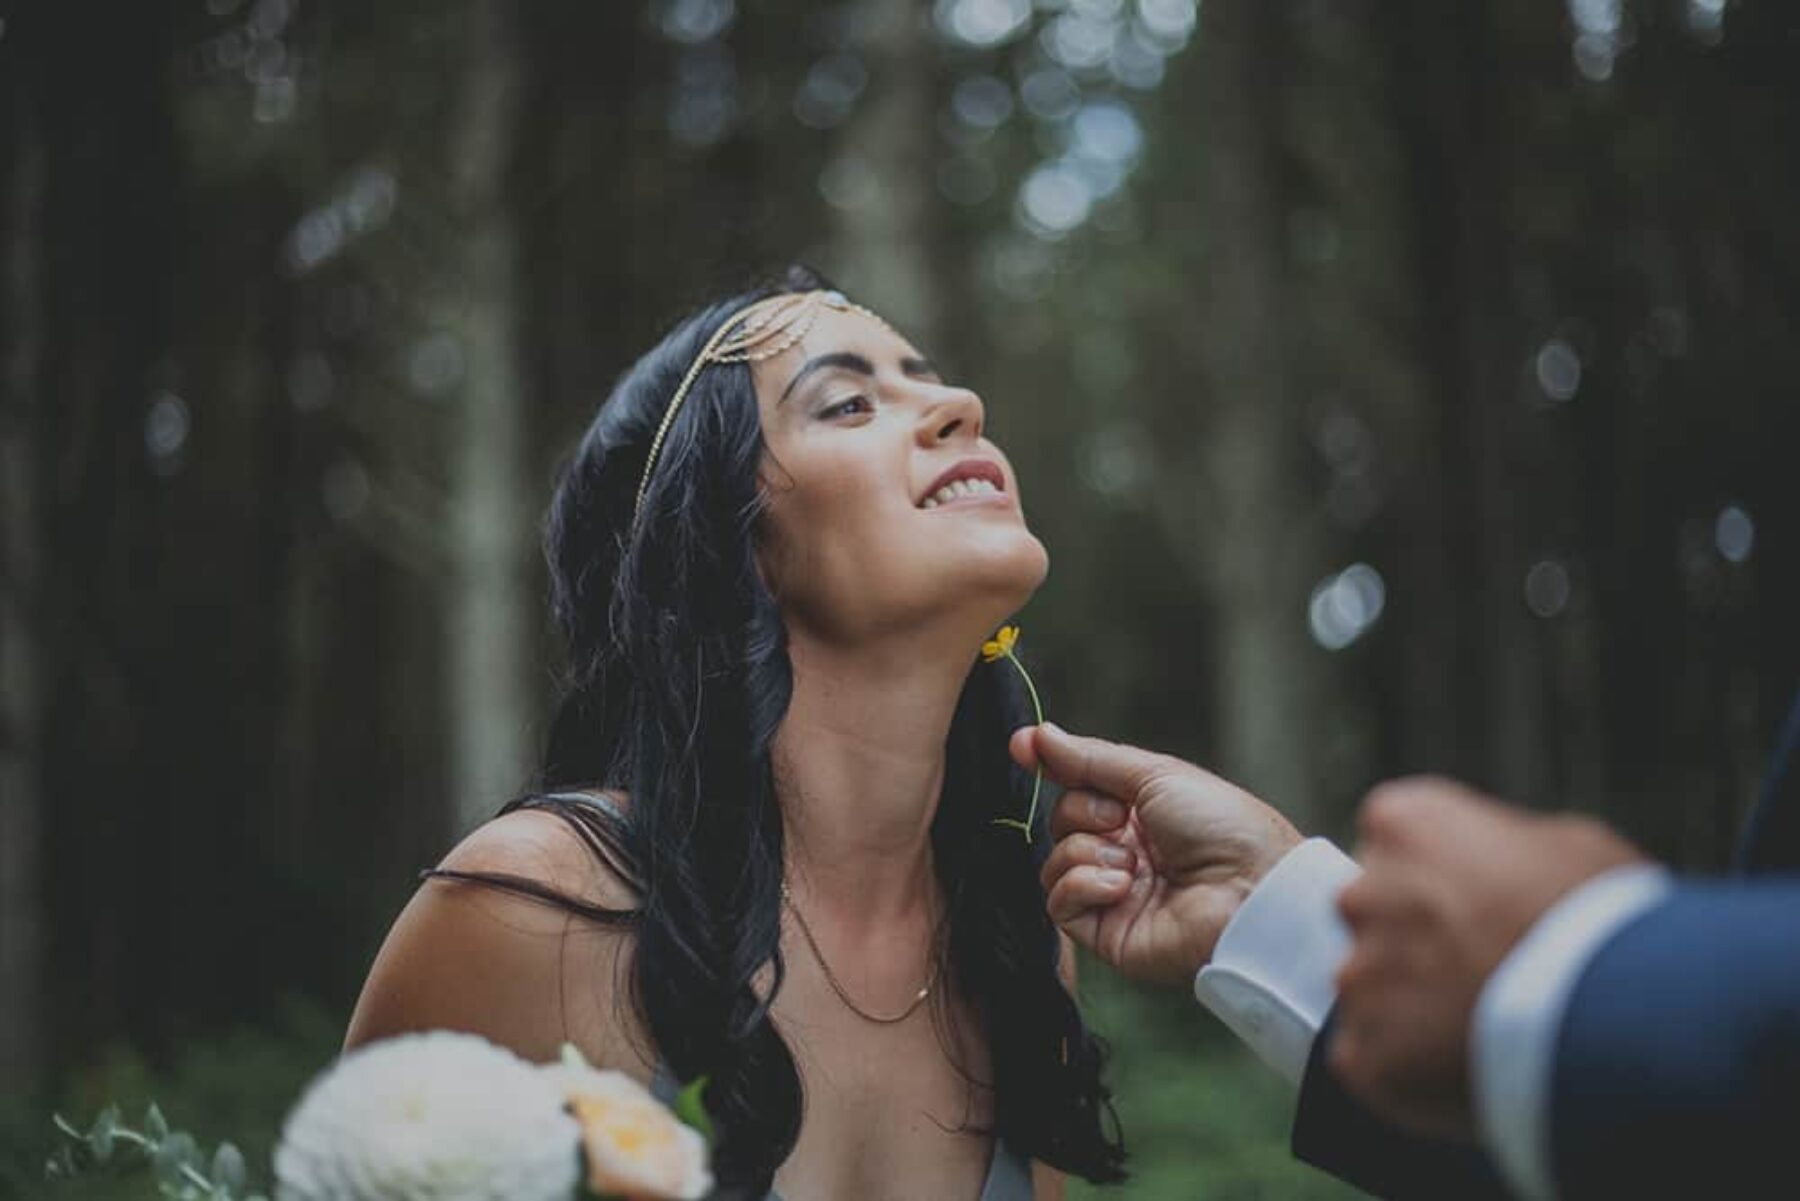 Rustic wedding at New Zealand's Old Forest School - photography by Lucy Rice